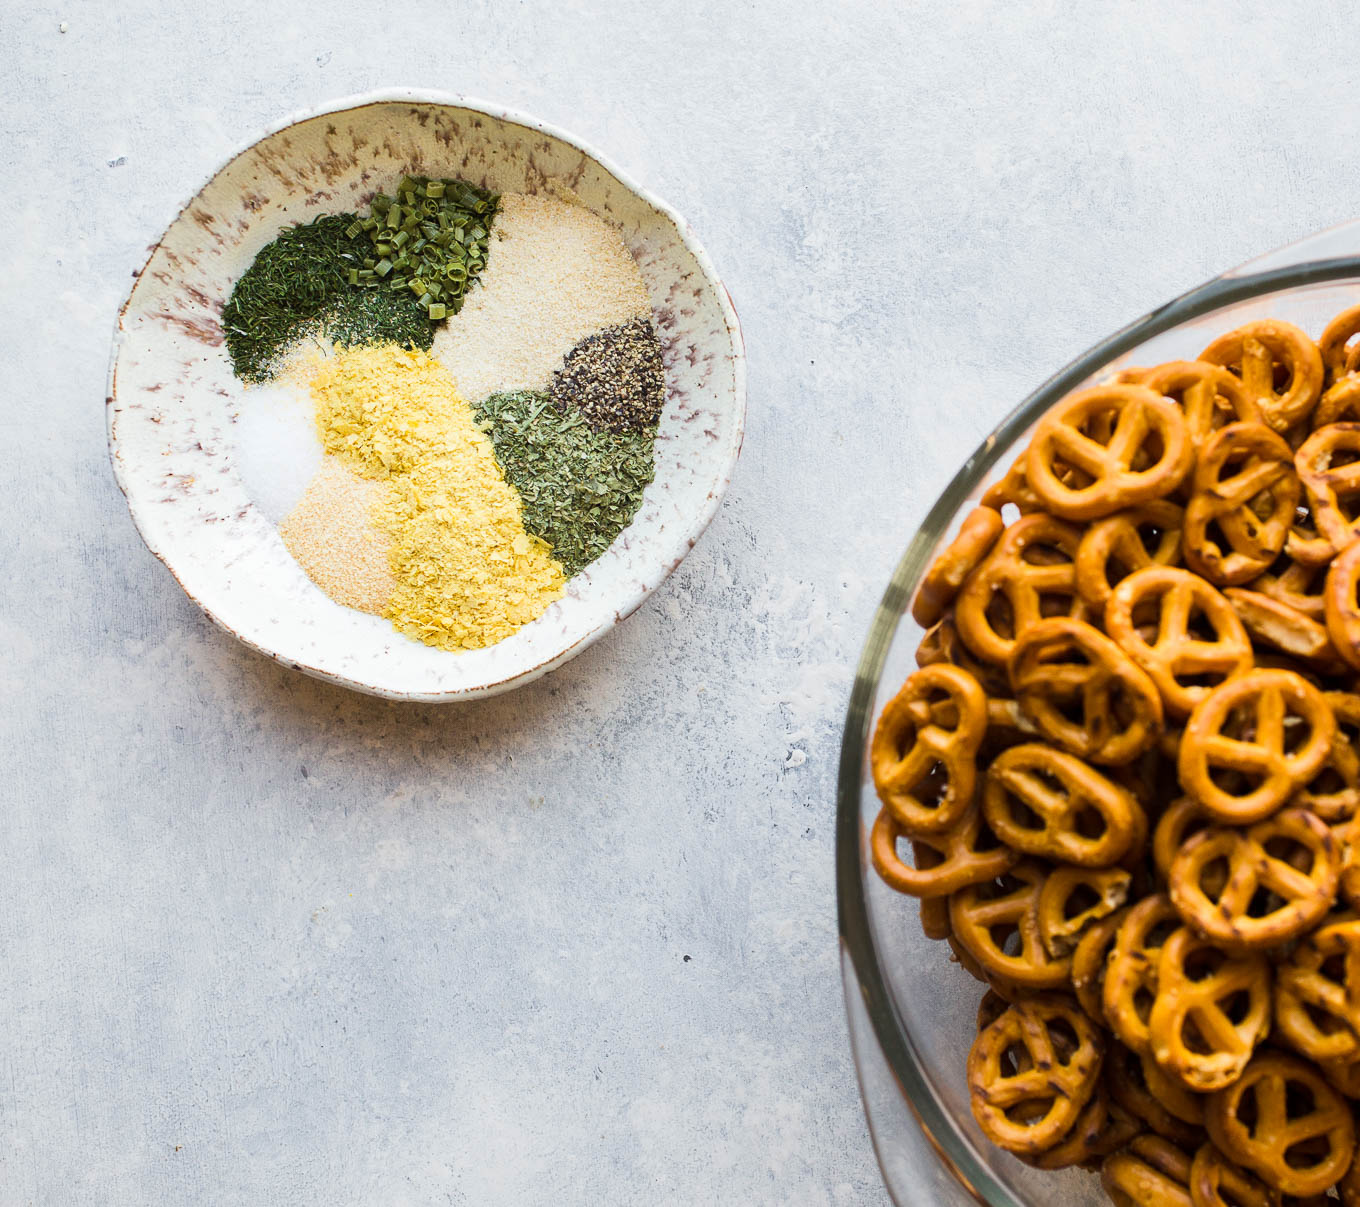 Gluten-Free Seasoned Pretzels made with olive oil, herbs, and nutritional yeast for an easy snack recipe. Vegan.